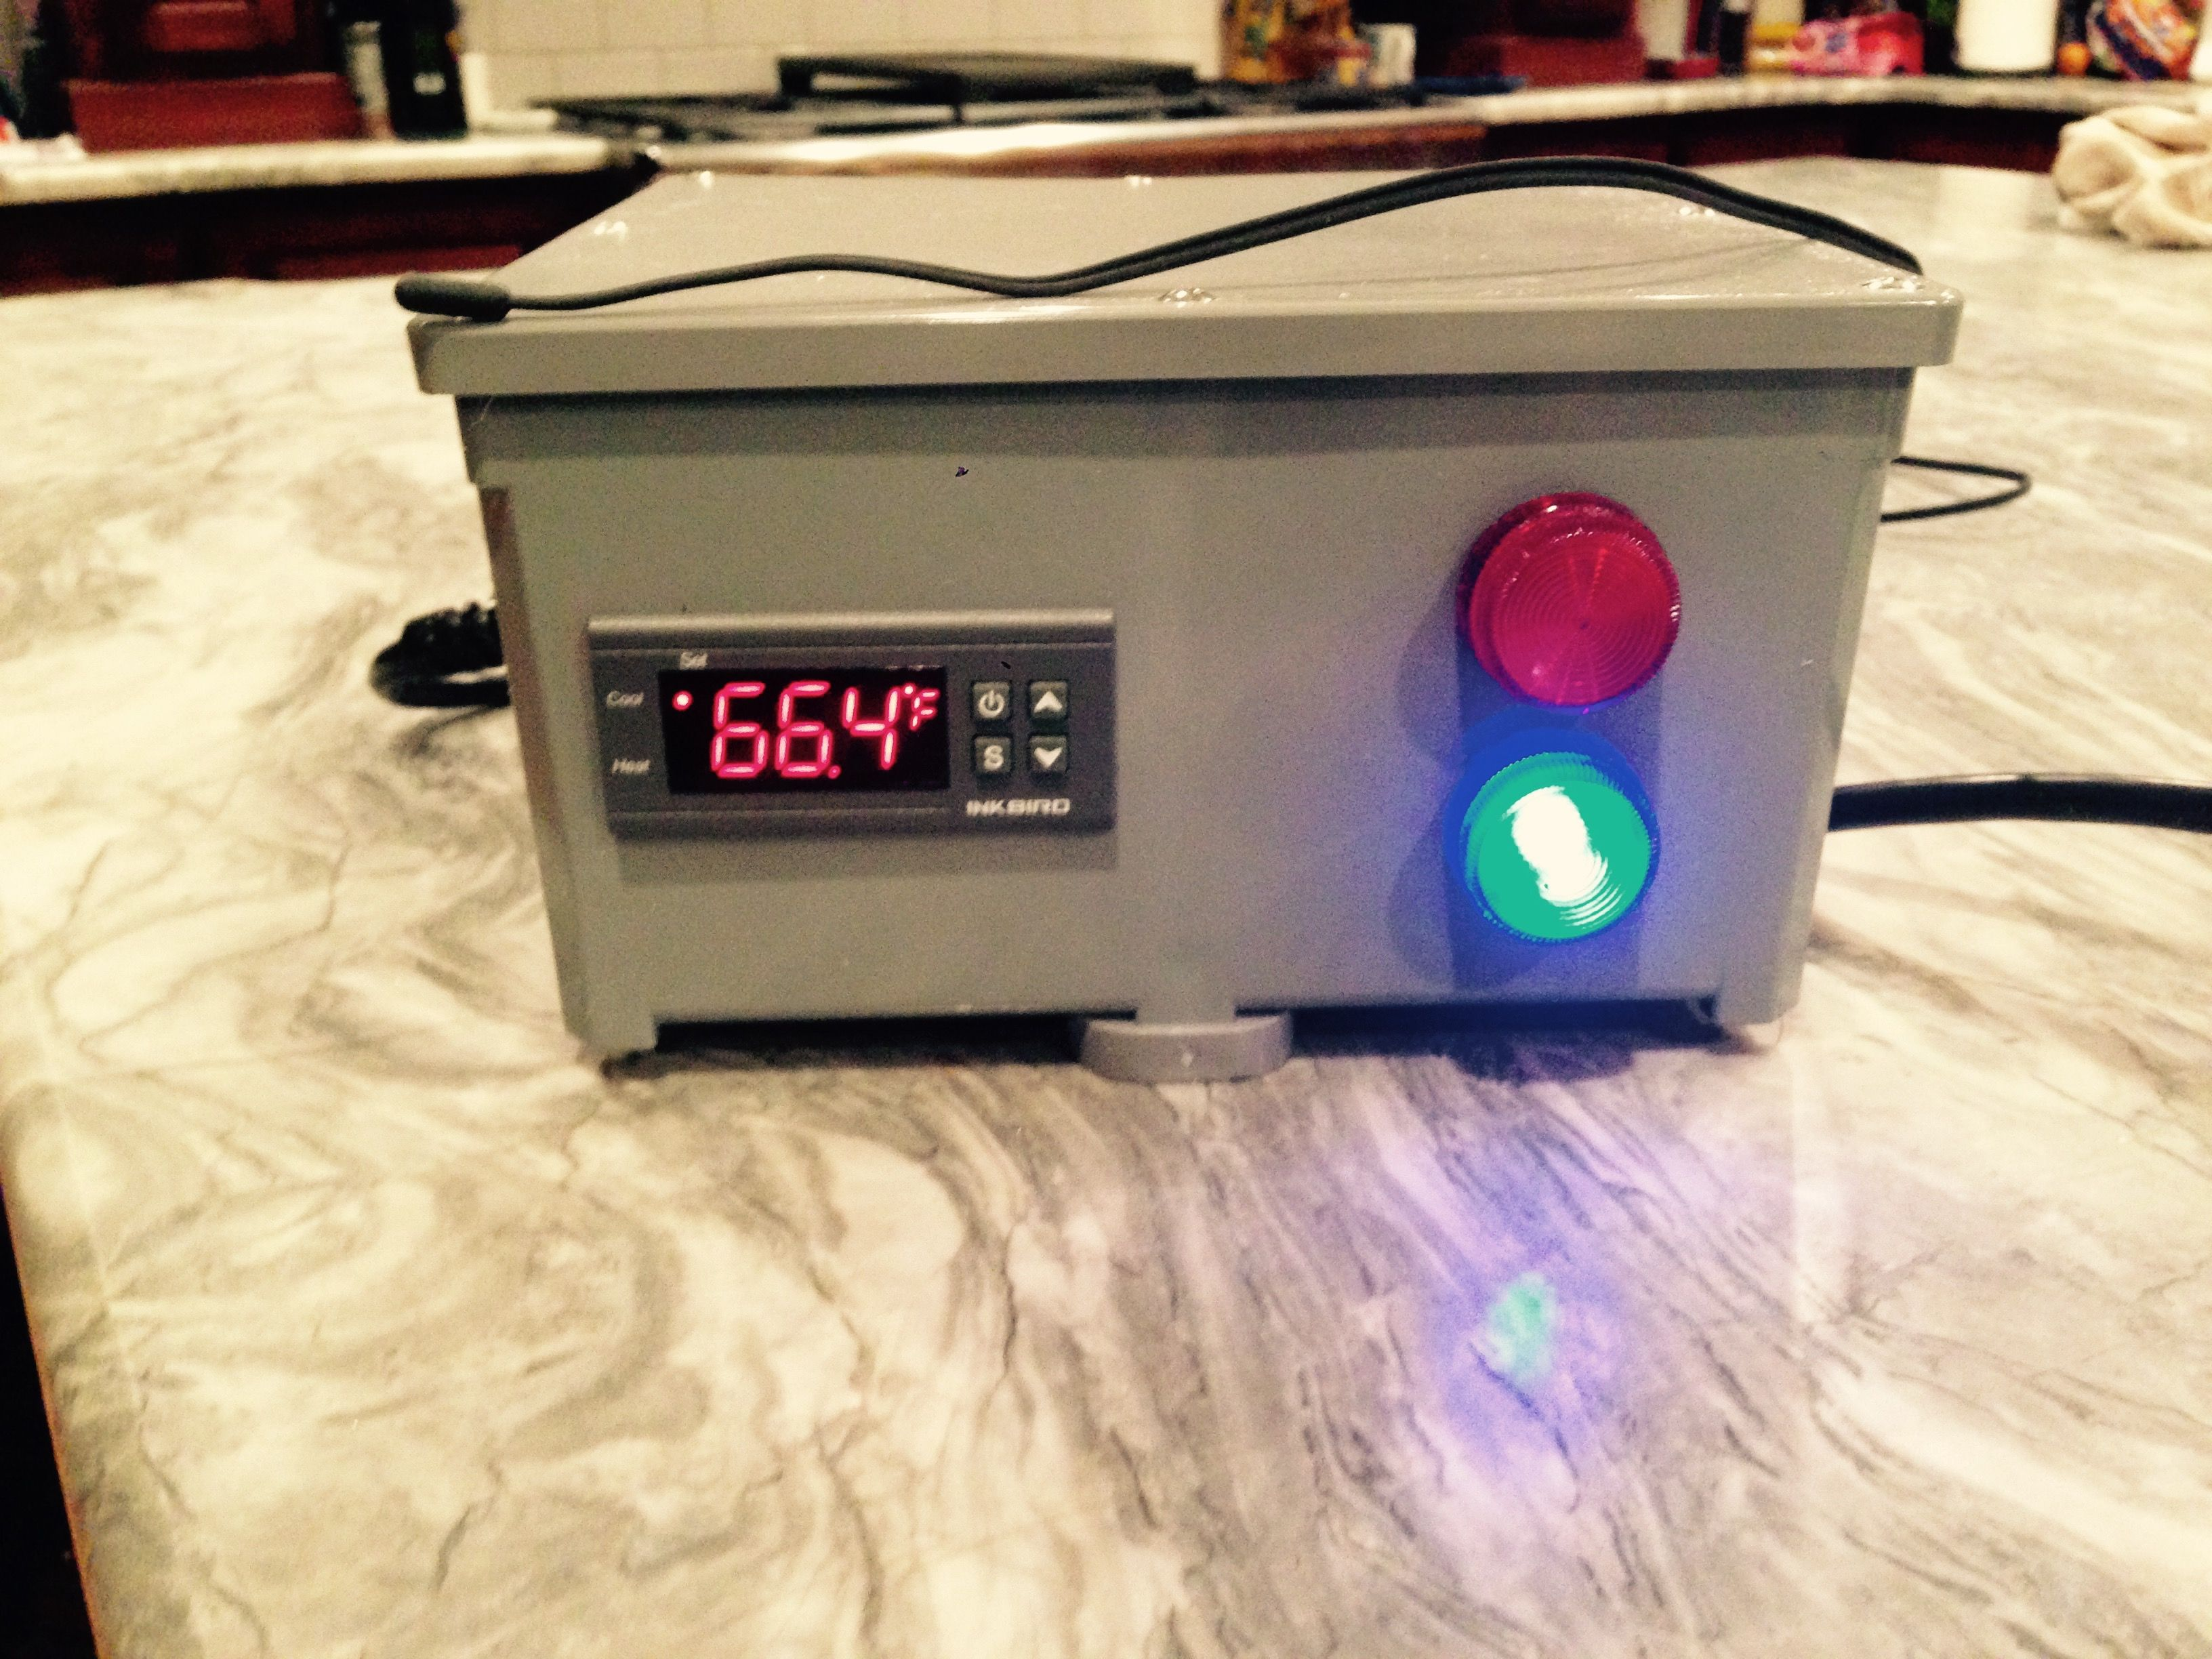 How To Wire A Ranco Digital Temperature Controller 120v Brewers Wiring 2 Stage With Indicator Lights For My Brewing Rh Pinterest Com